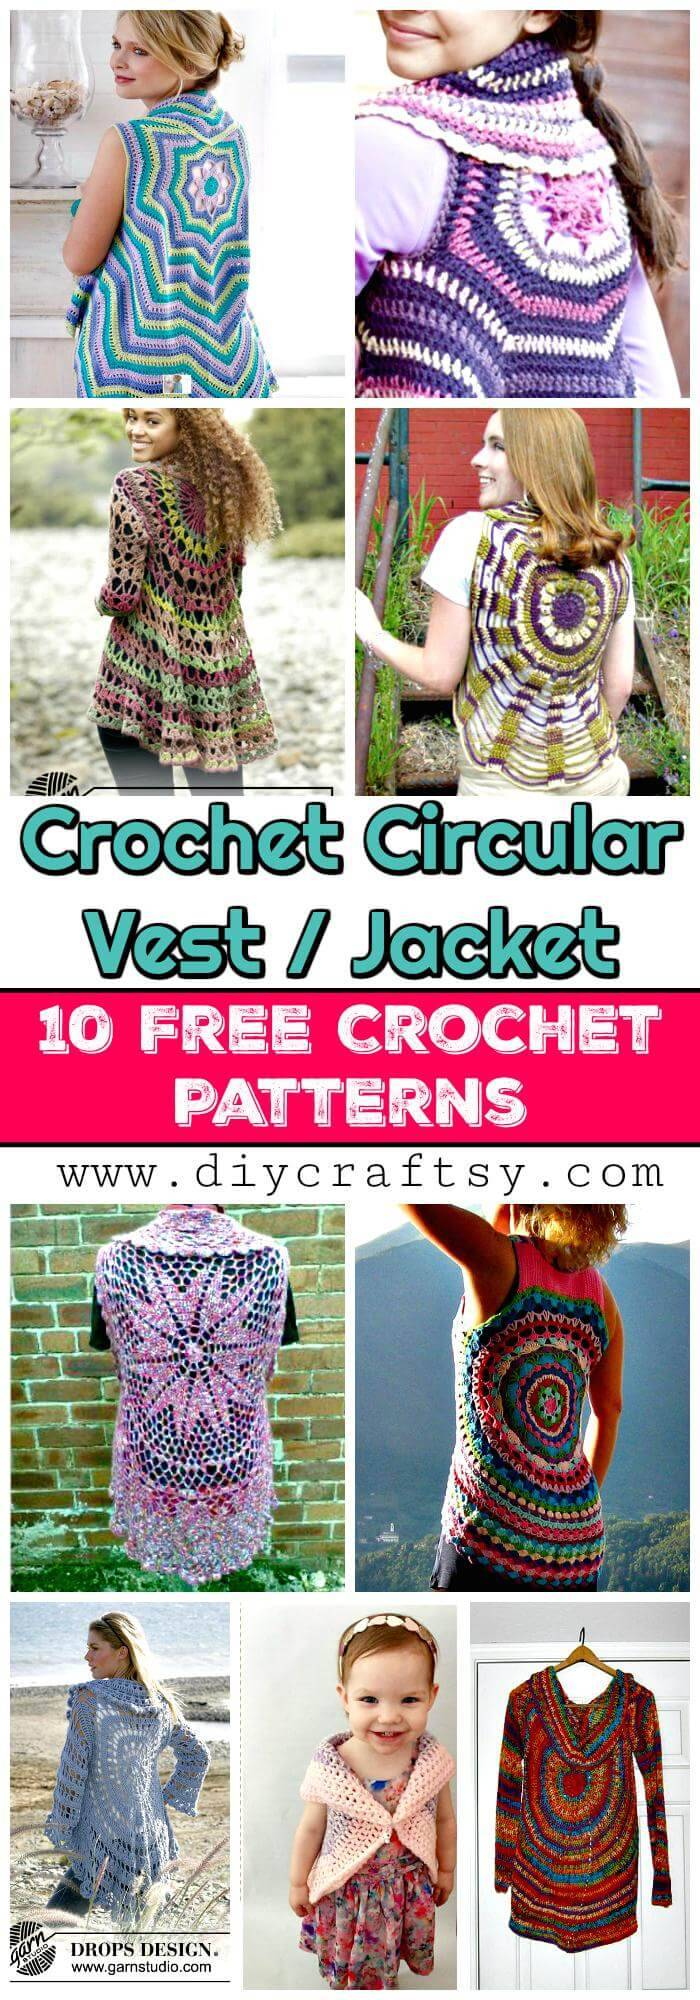 Crochet Circular Vest / Jacket - 10 FREE Crochet Patterns